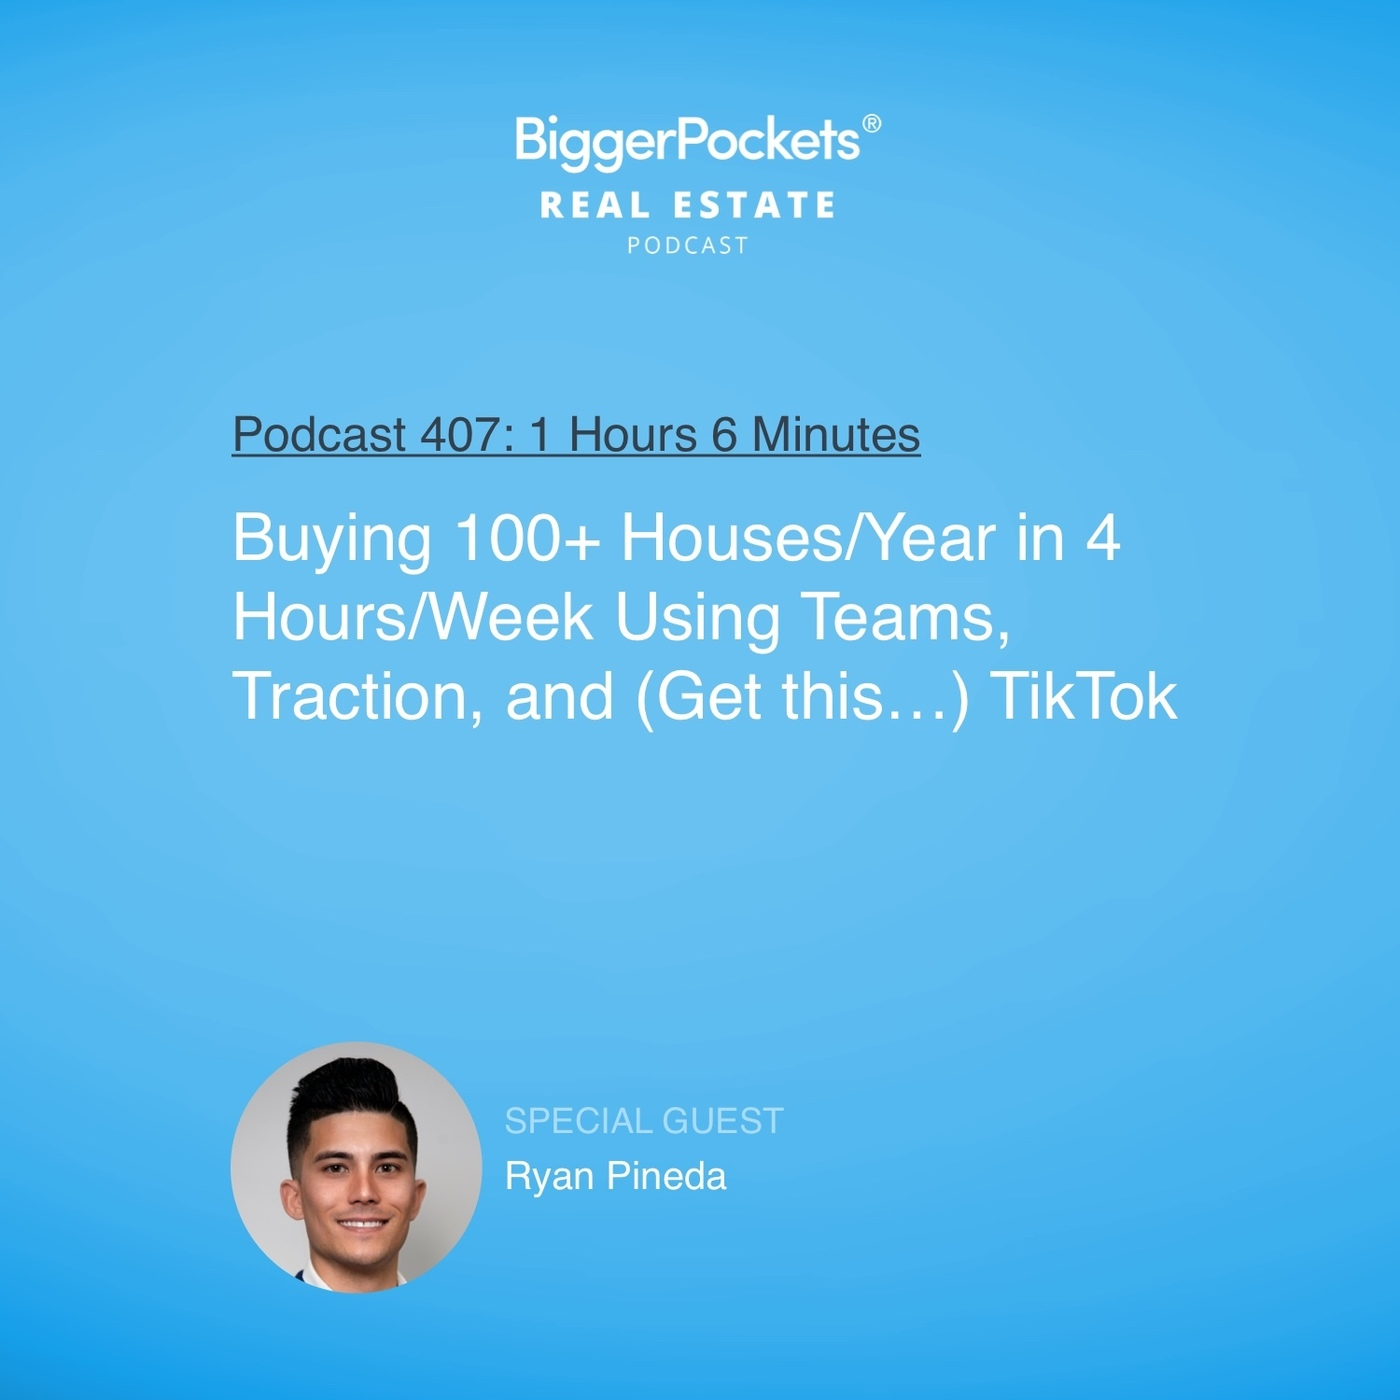 407: Buying 100+ Houses/Year in 4 Hours/Week Using Teams, Traction, and (Get this…) TikTok with Ryan Pineda